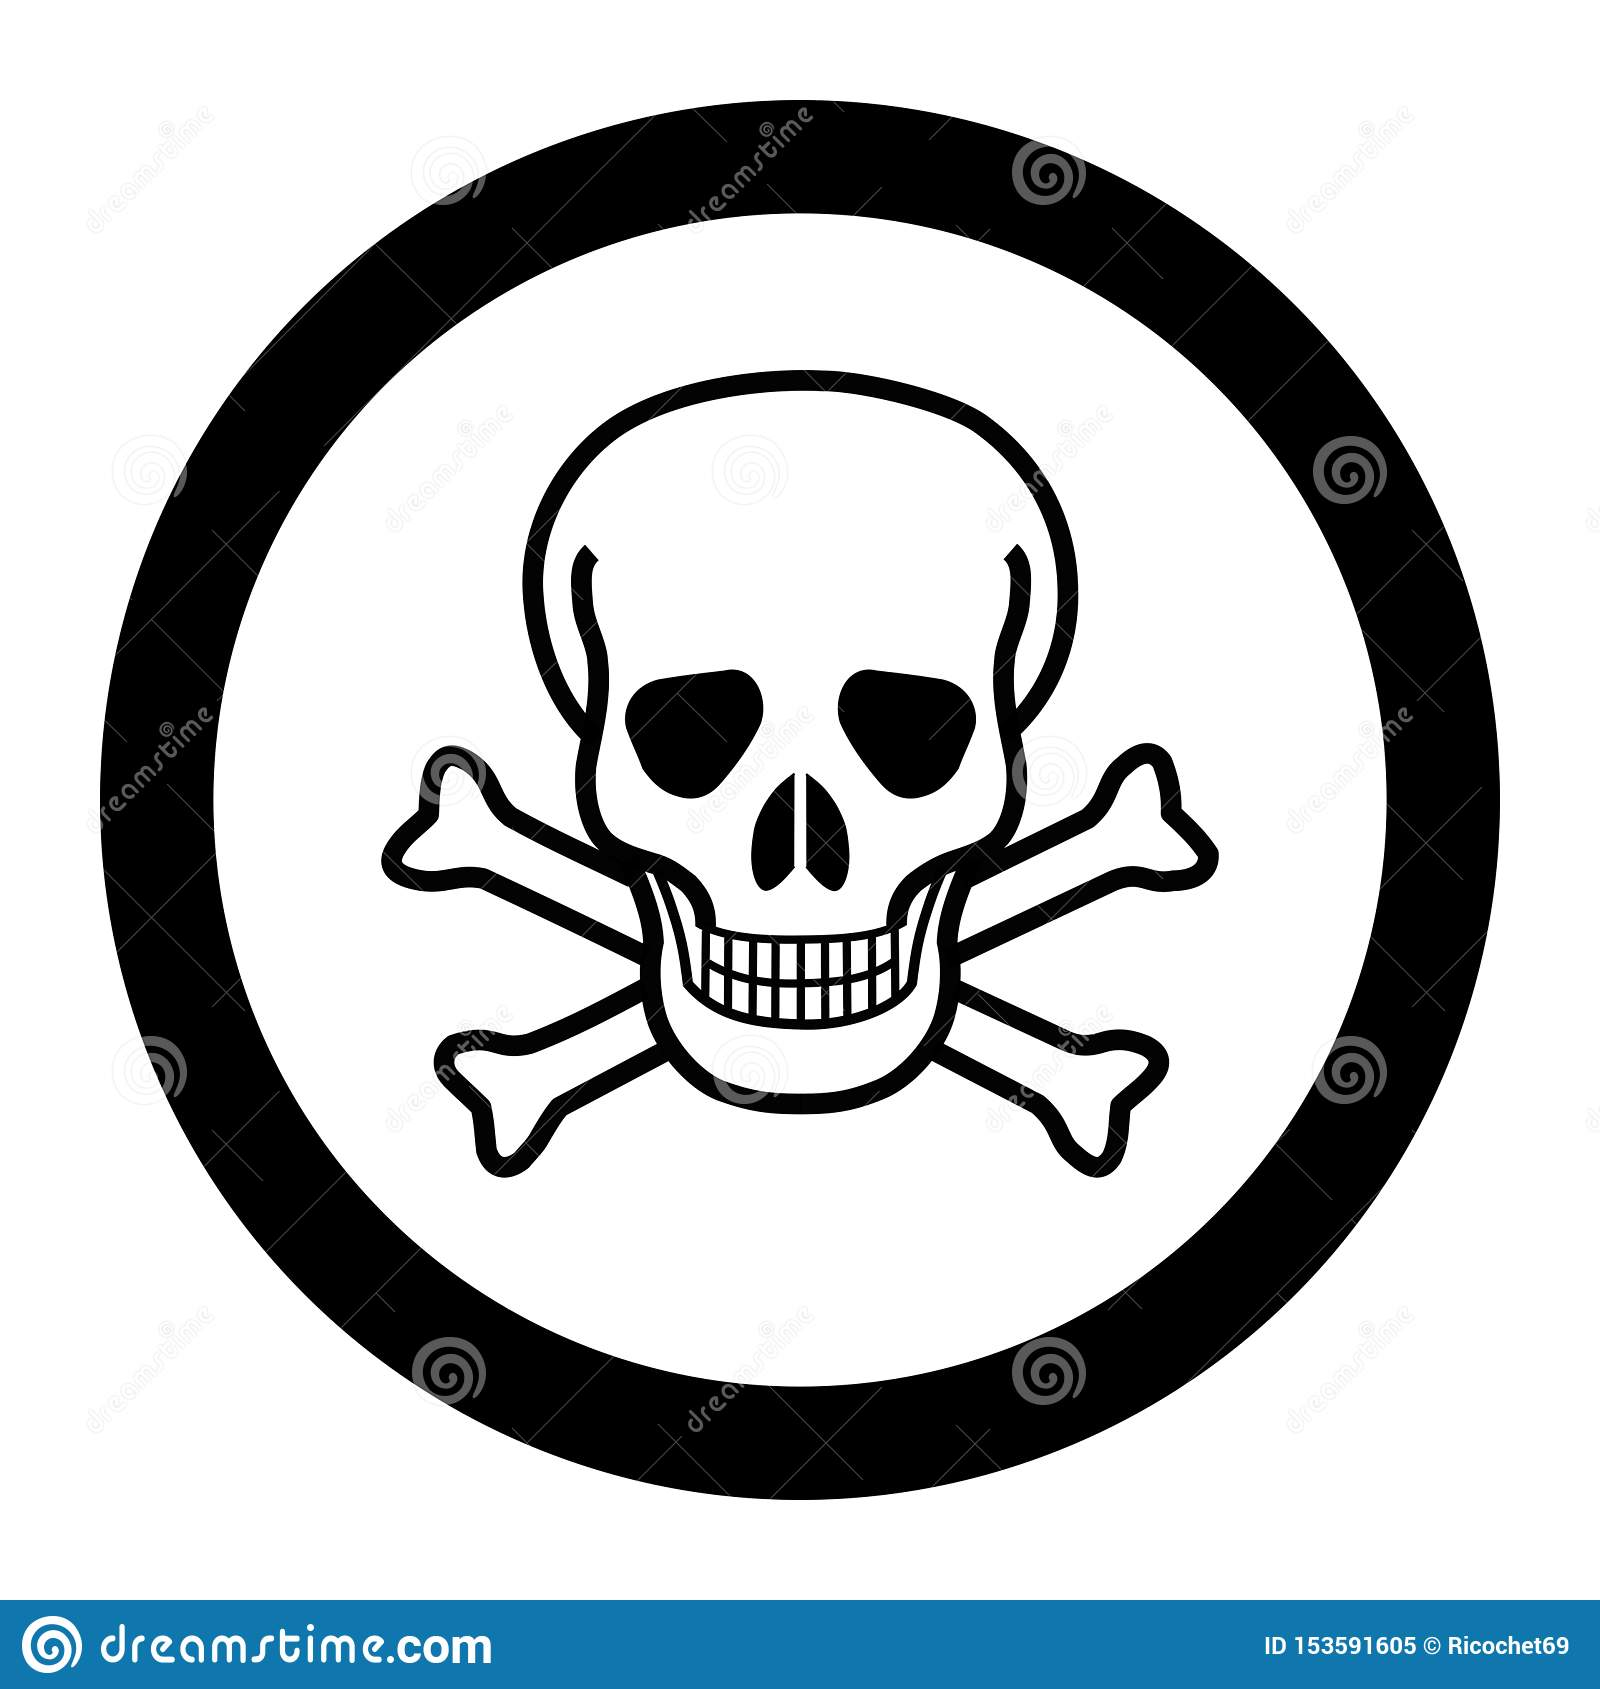 White Skull And Crossbones In A Circle Stock Illustration Illustration Of Black Shape 153591605